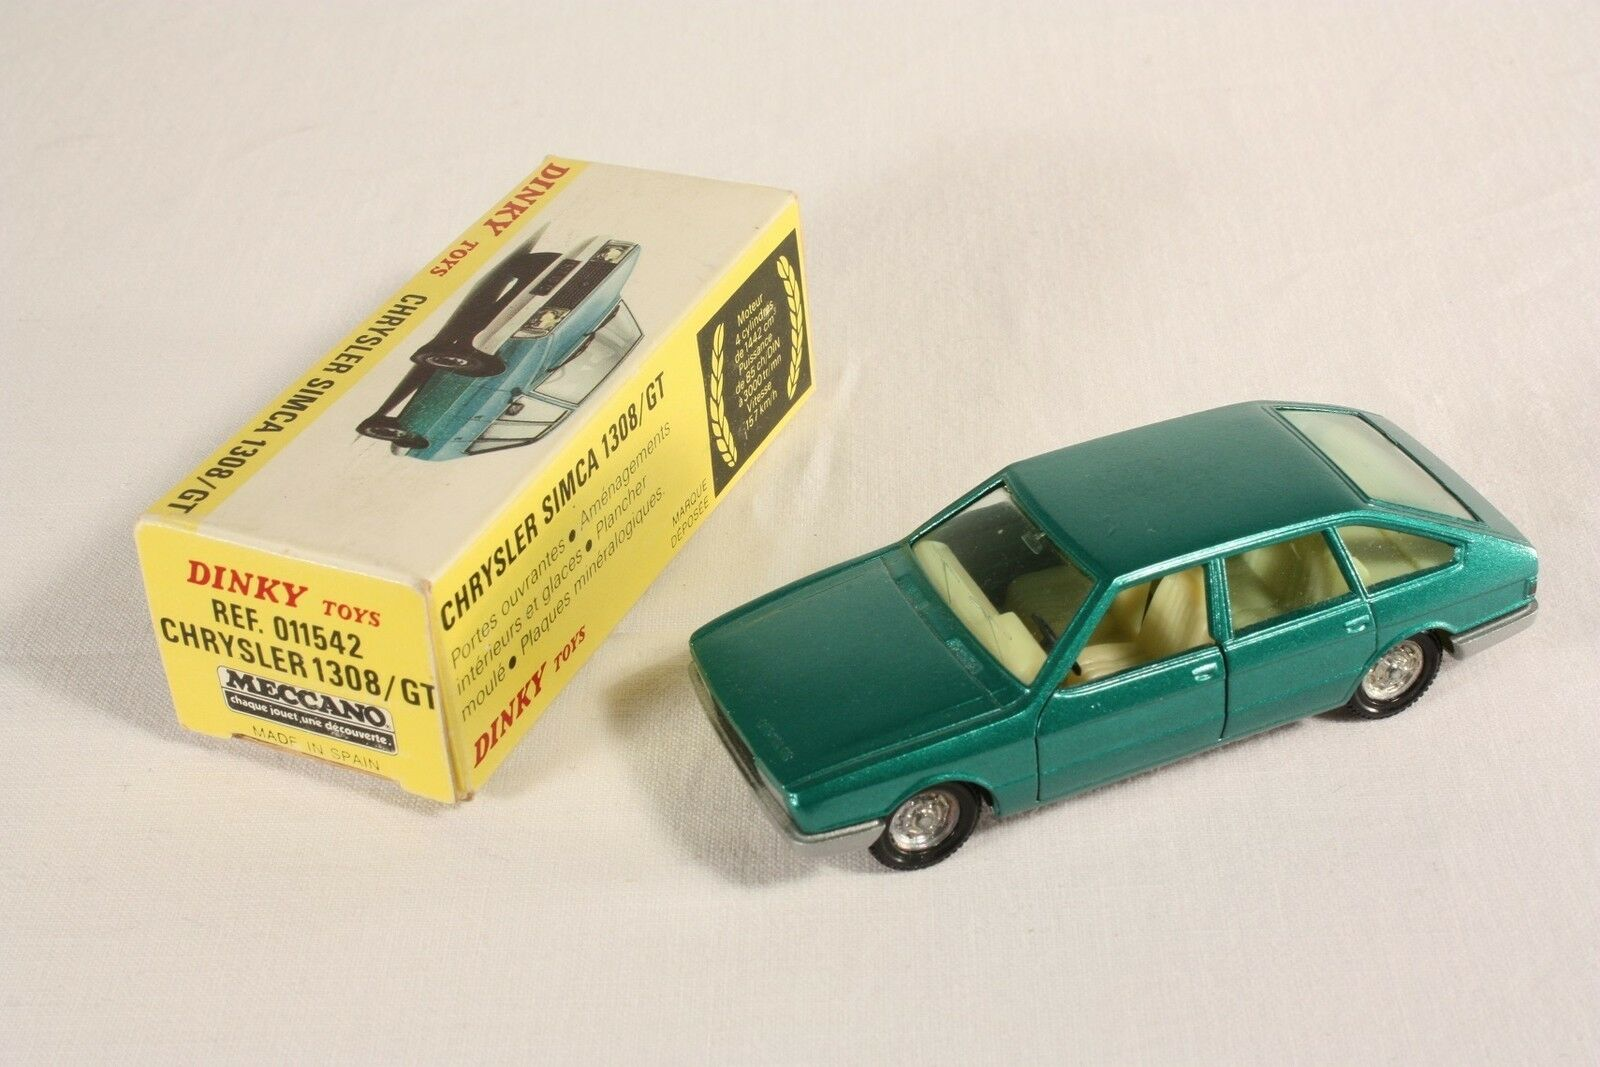 DINKY TOYS 011542, Chrysler Simca 1308 GT, Comme neuf Dans Box  ab558